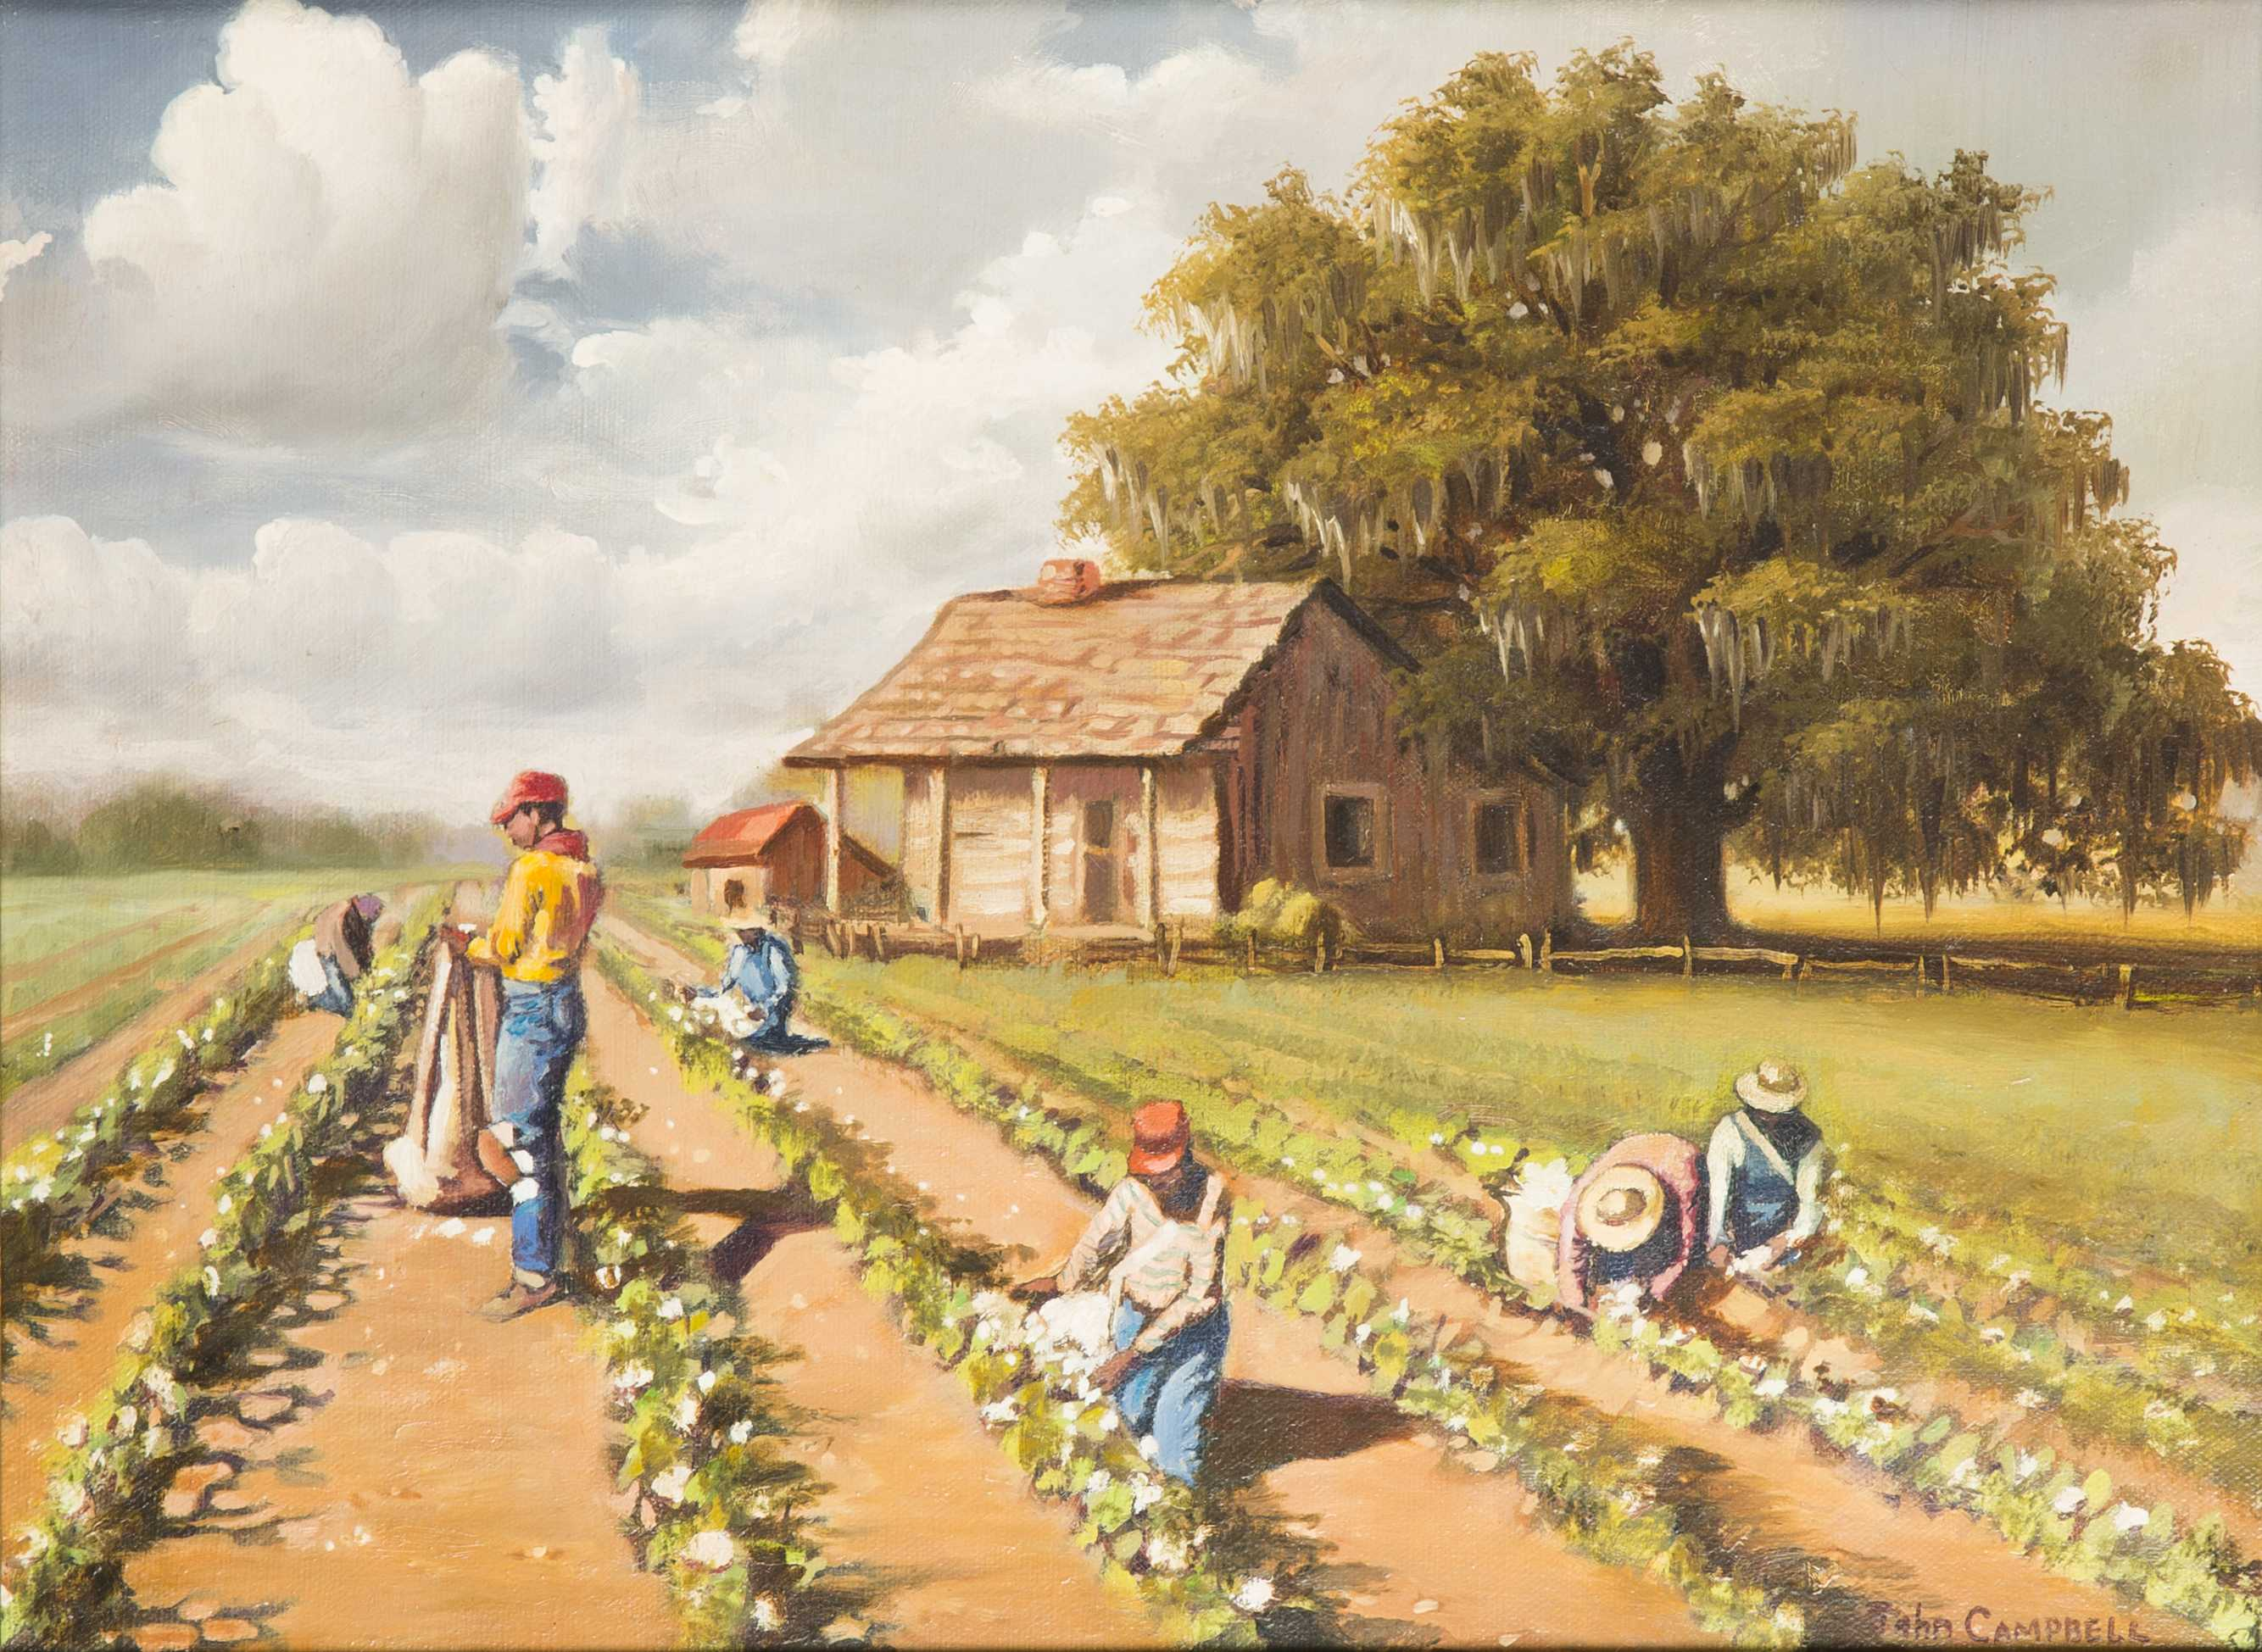 rape redemption injustice and mercy in picking cotton a book by jennifer thompson cannino and ronald